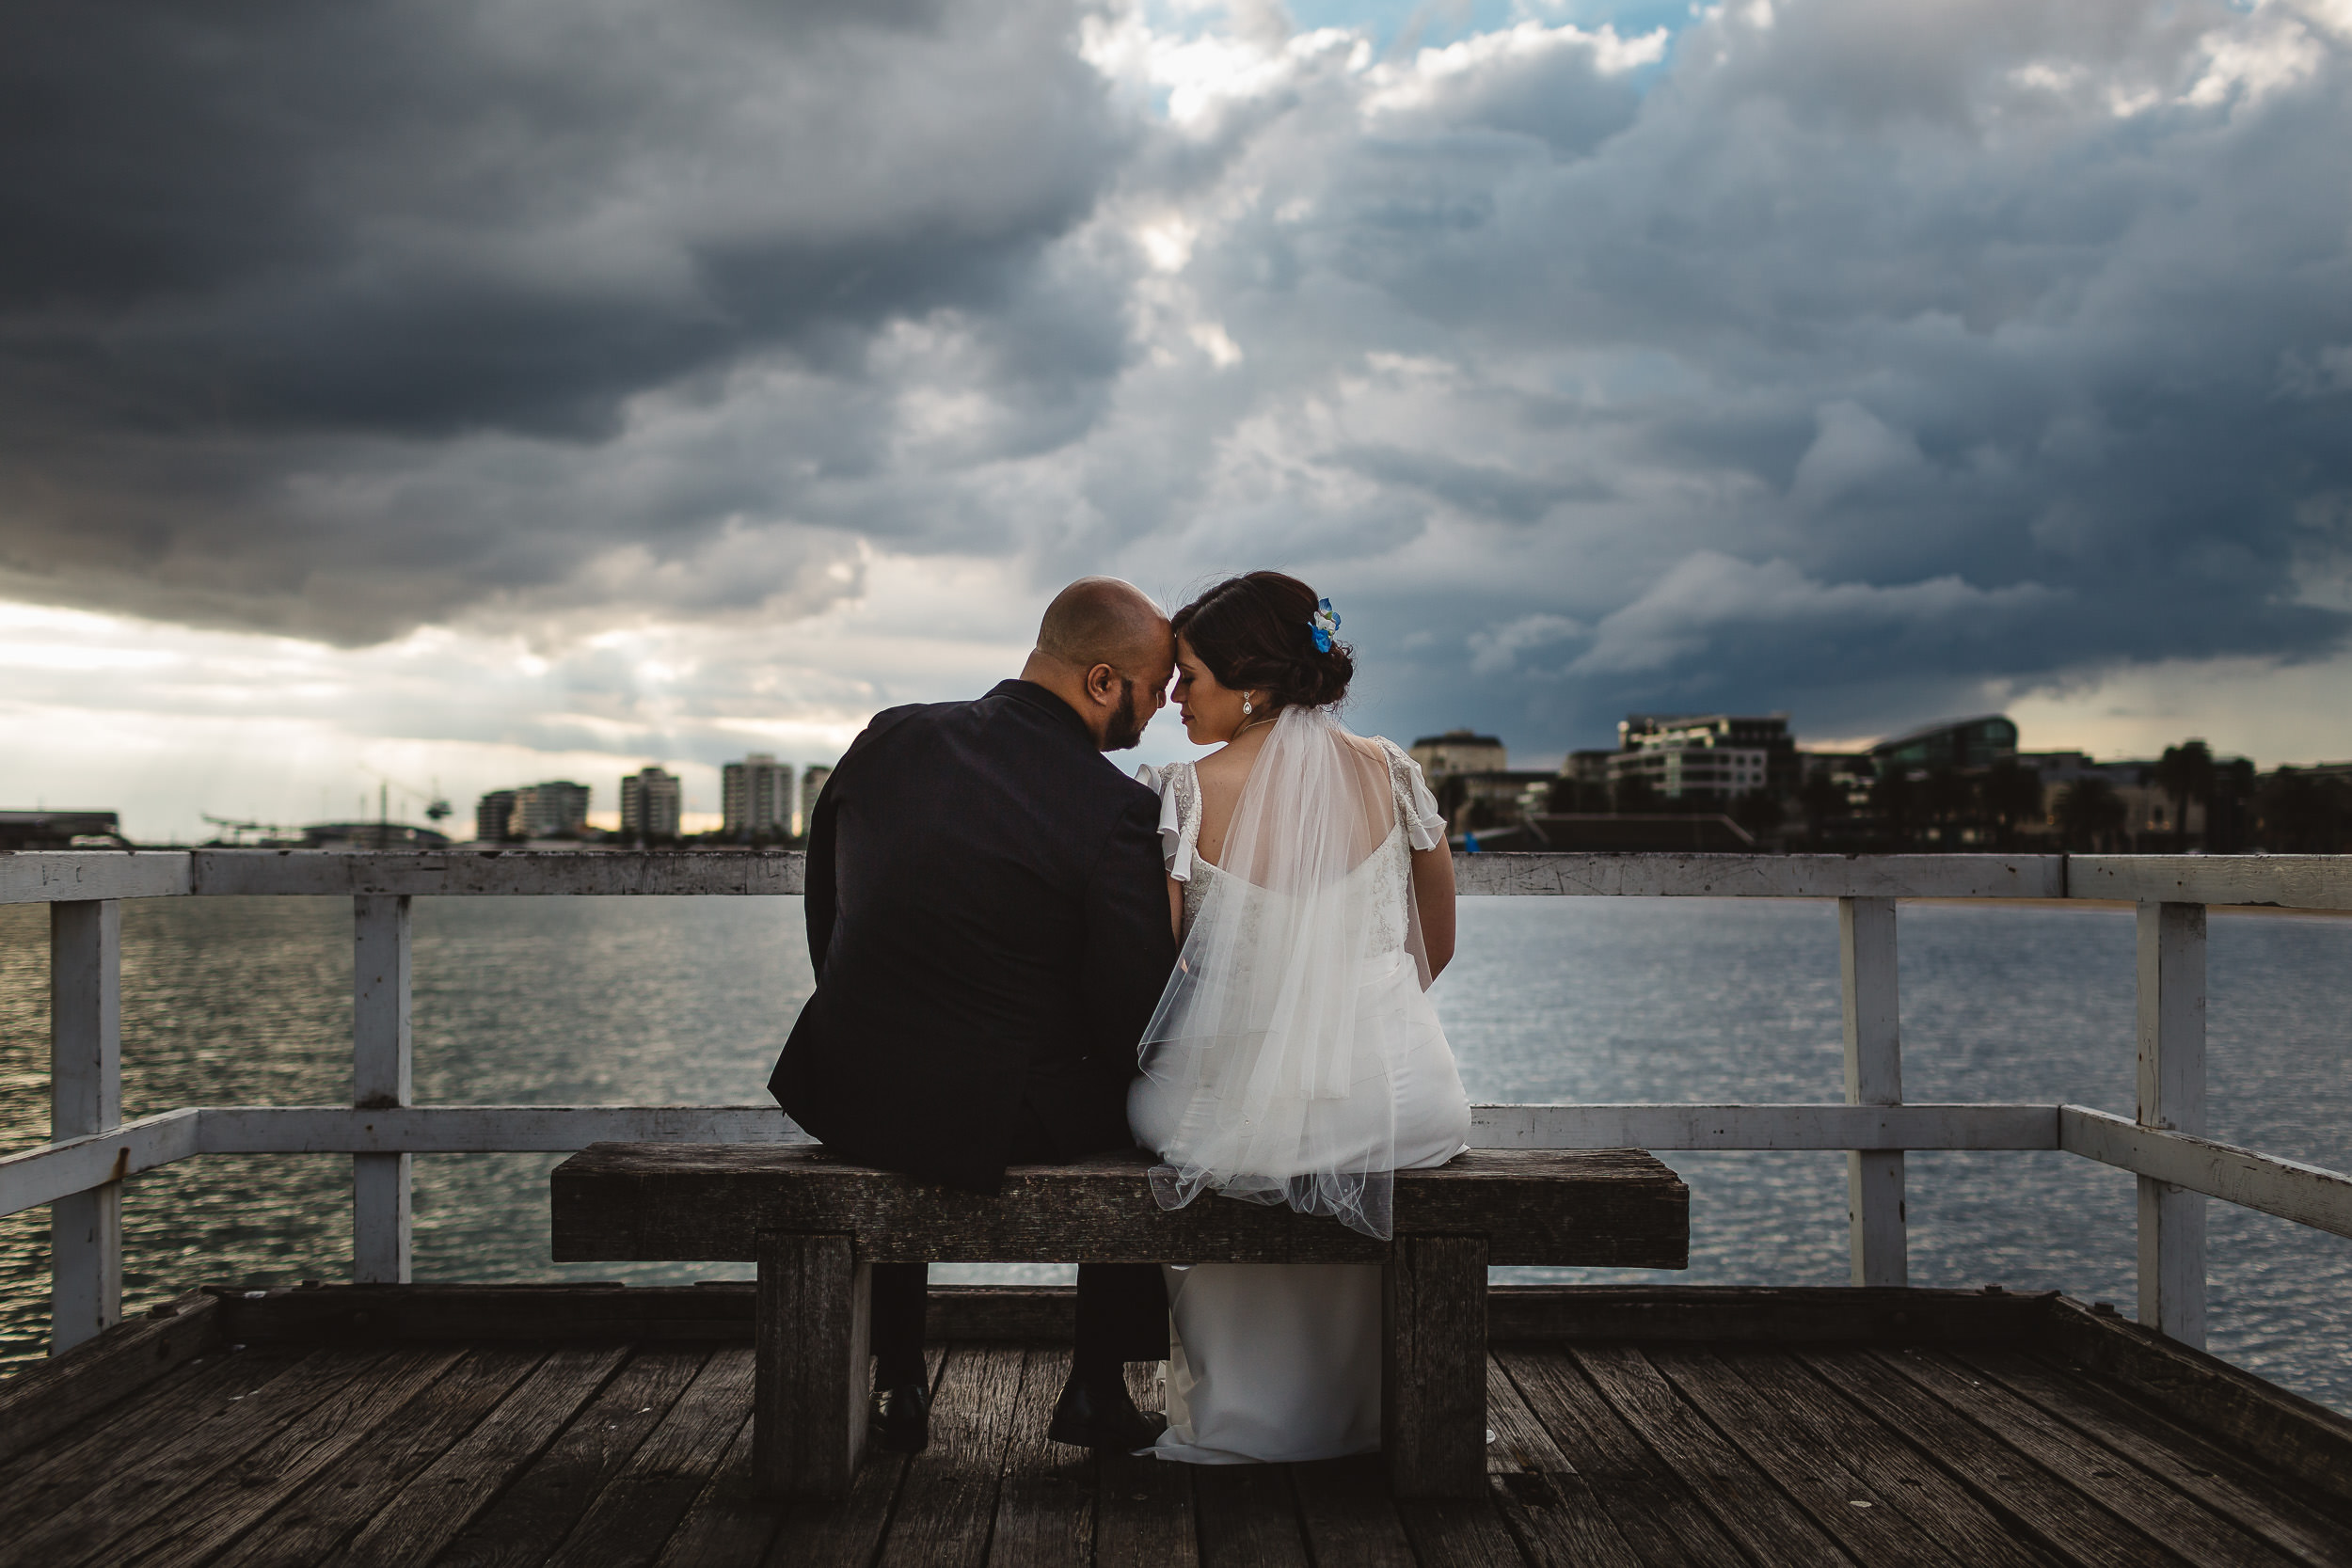 Melbourne-Wedding-Photographer-1096.jpg